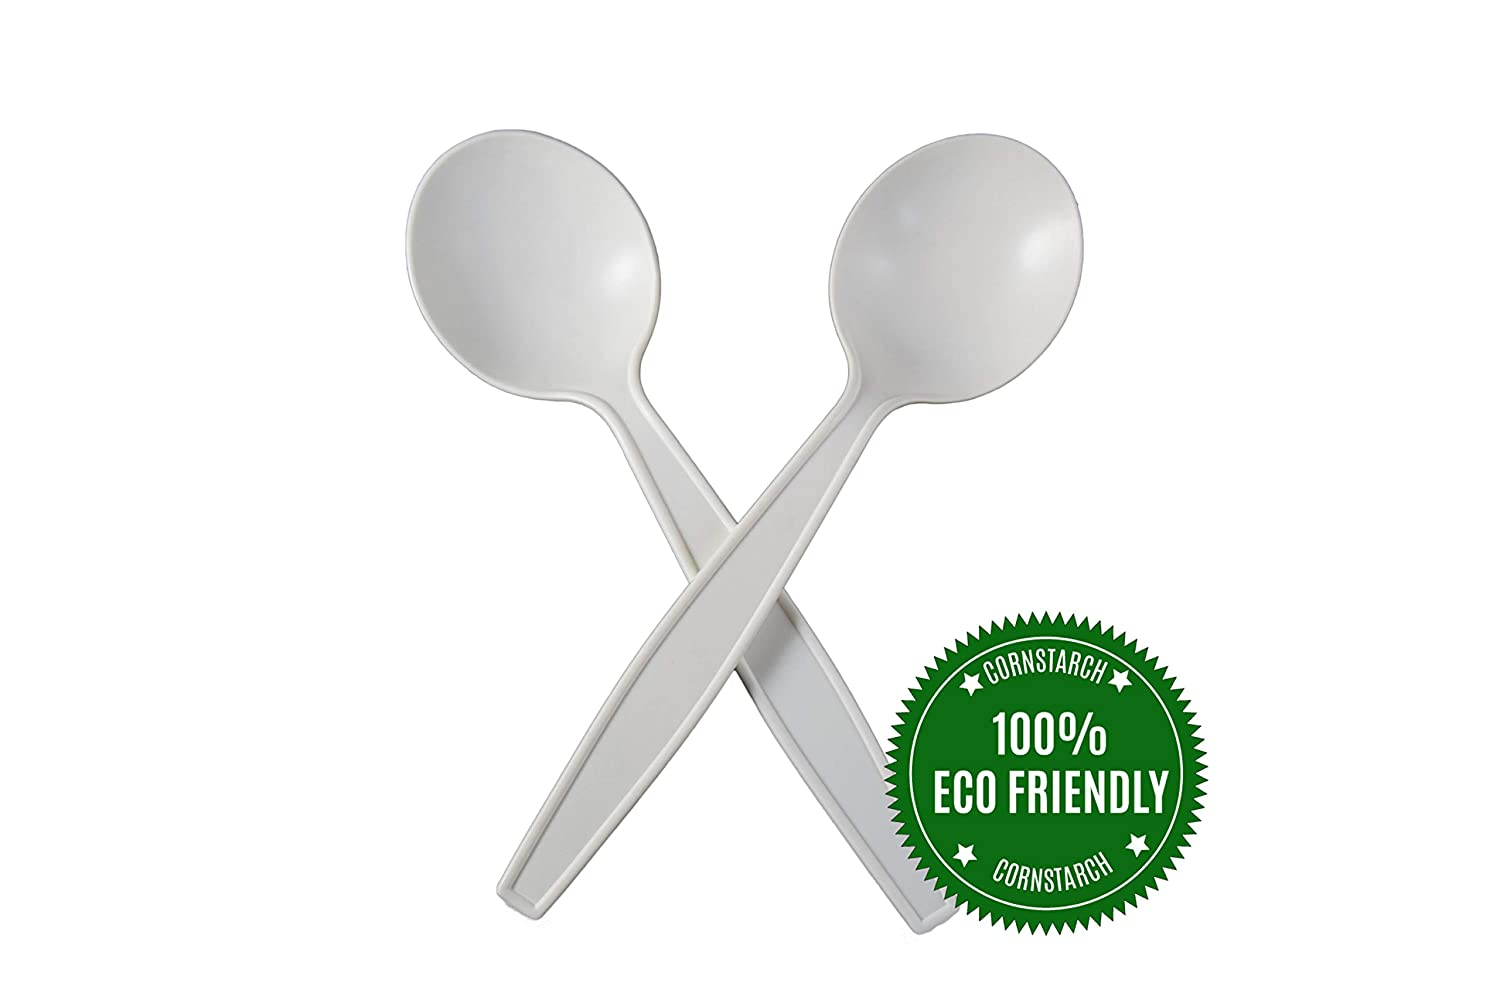 HeloGreen Eco-Friendly Cornstarch 6 Disposable Soup Spoons: Heavyweight Heavy Duty Elegant Alternative To Plastic Spoons Wedding Plasticware Utensils Cutlery for Party Supplies Ivory 50 Set